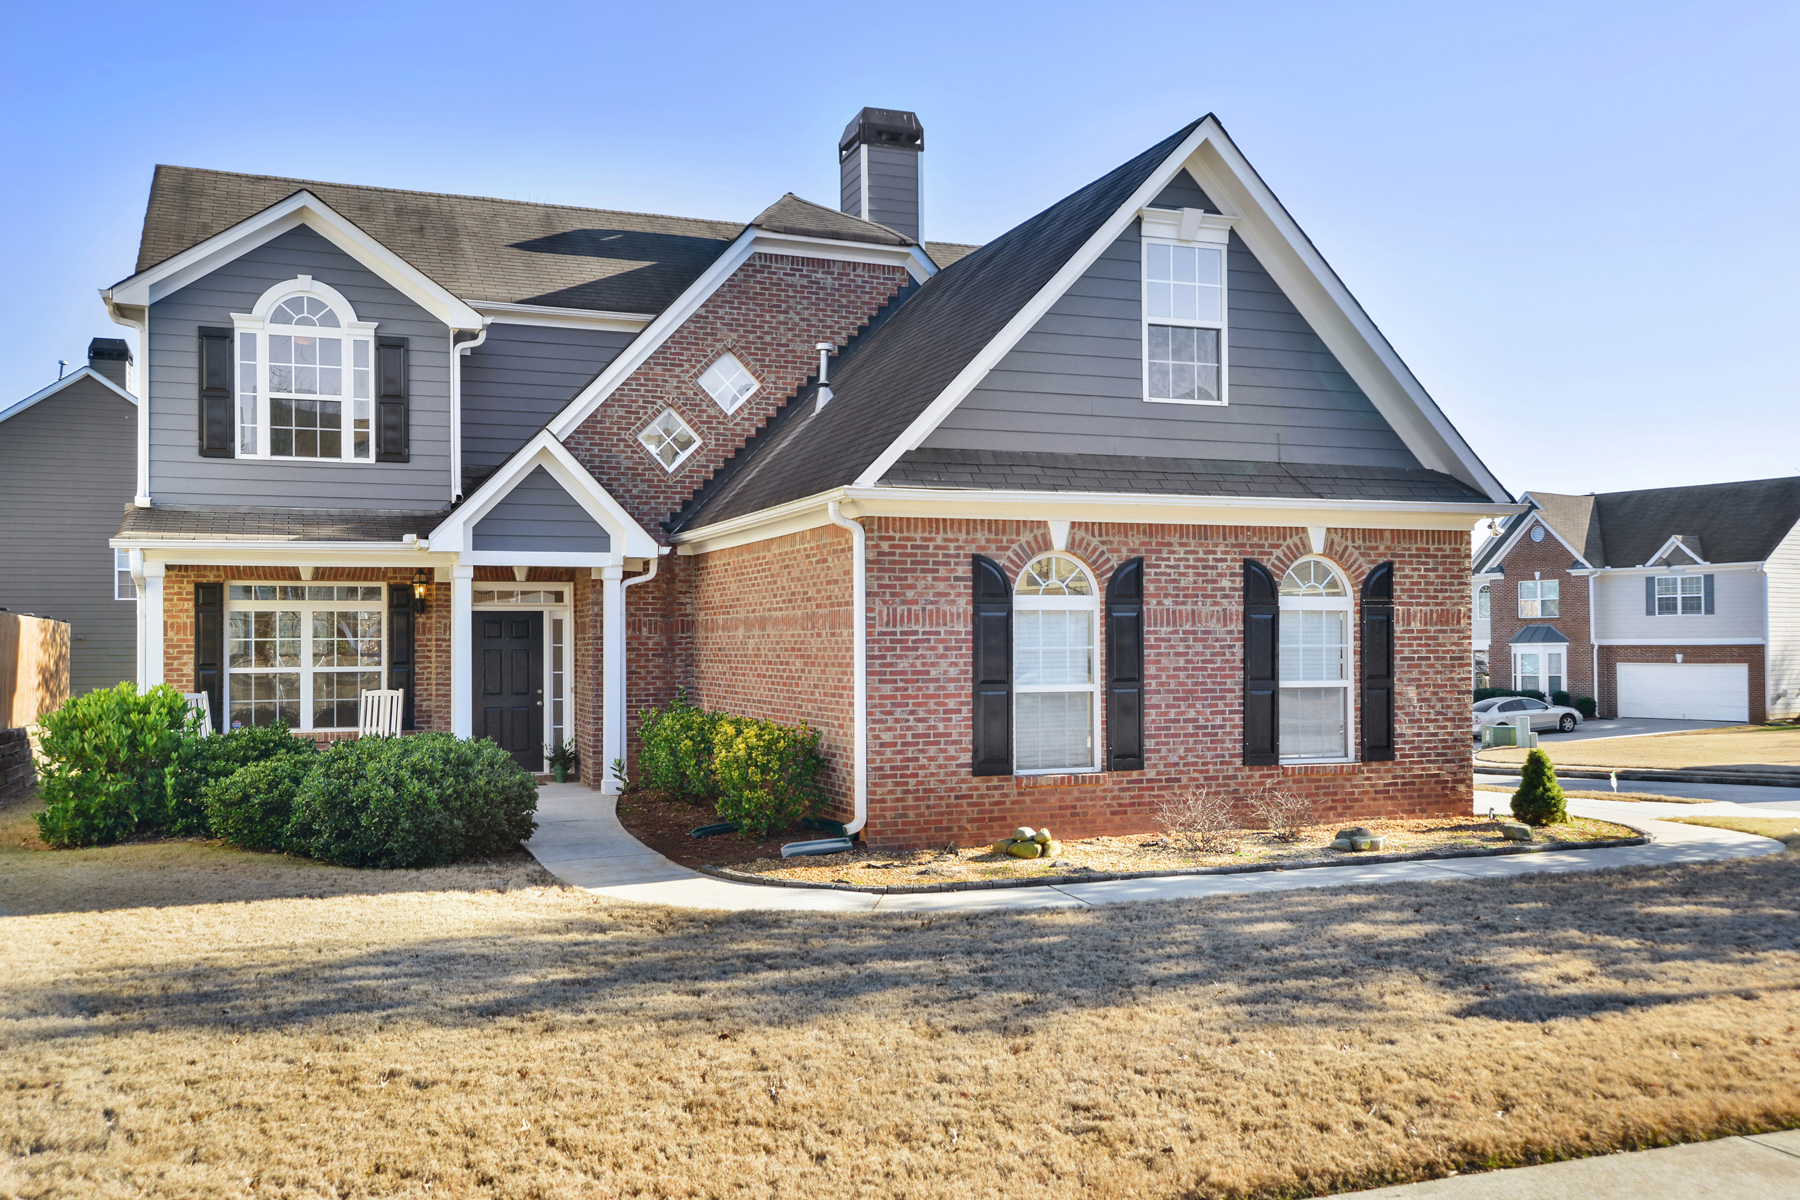 Single Family Home for Sale at Fantastic Corner Lot Two-Story Traditional Home 3173 Cleftstone Trail Lawrenceville, Georgia 30046 United States